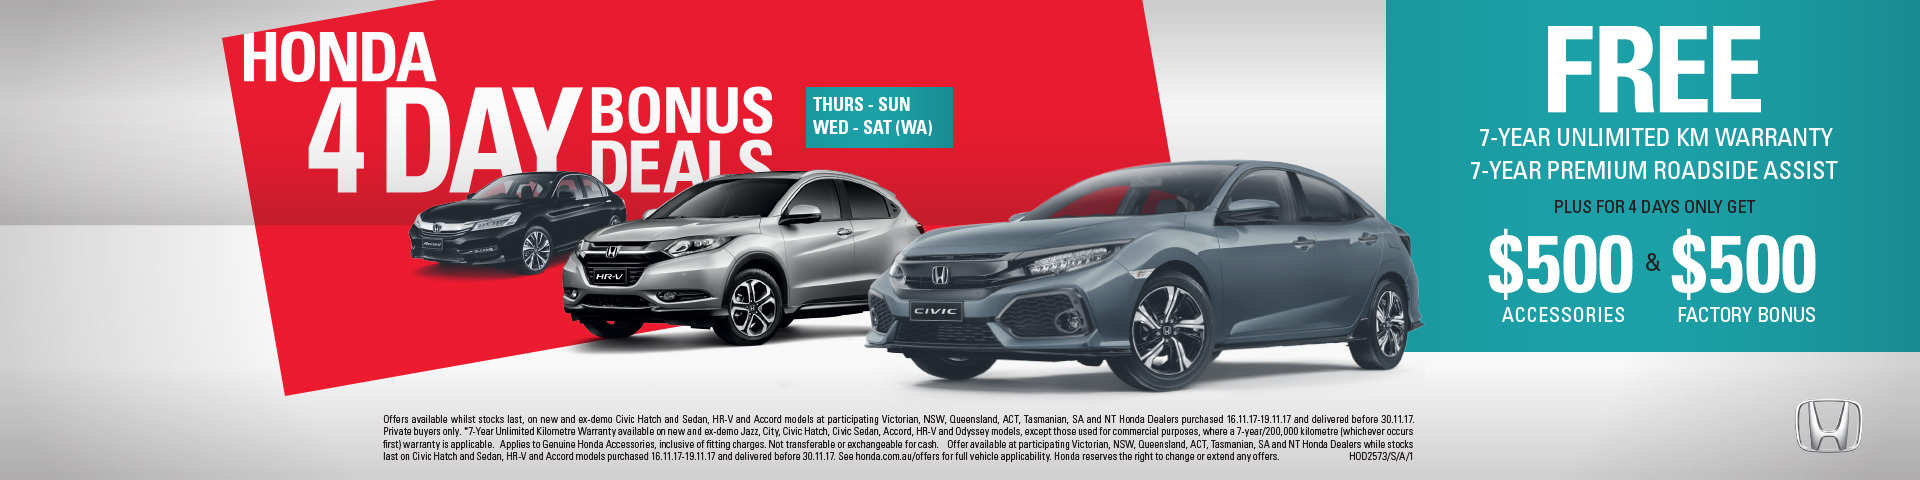 Honda - National Offer - Honda 4 Day Bonus Deals